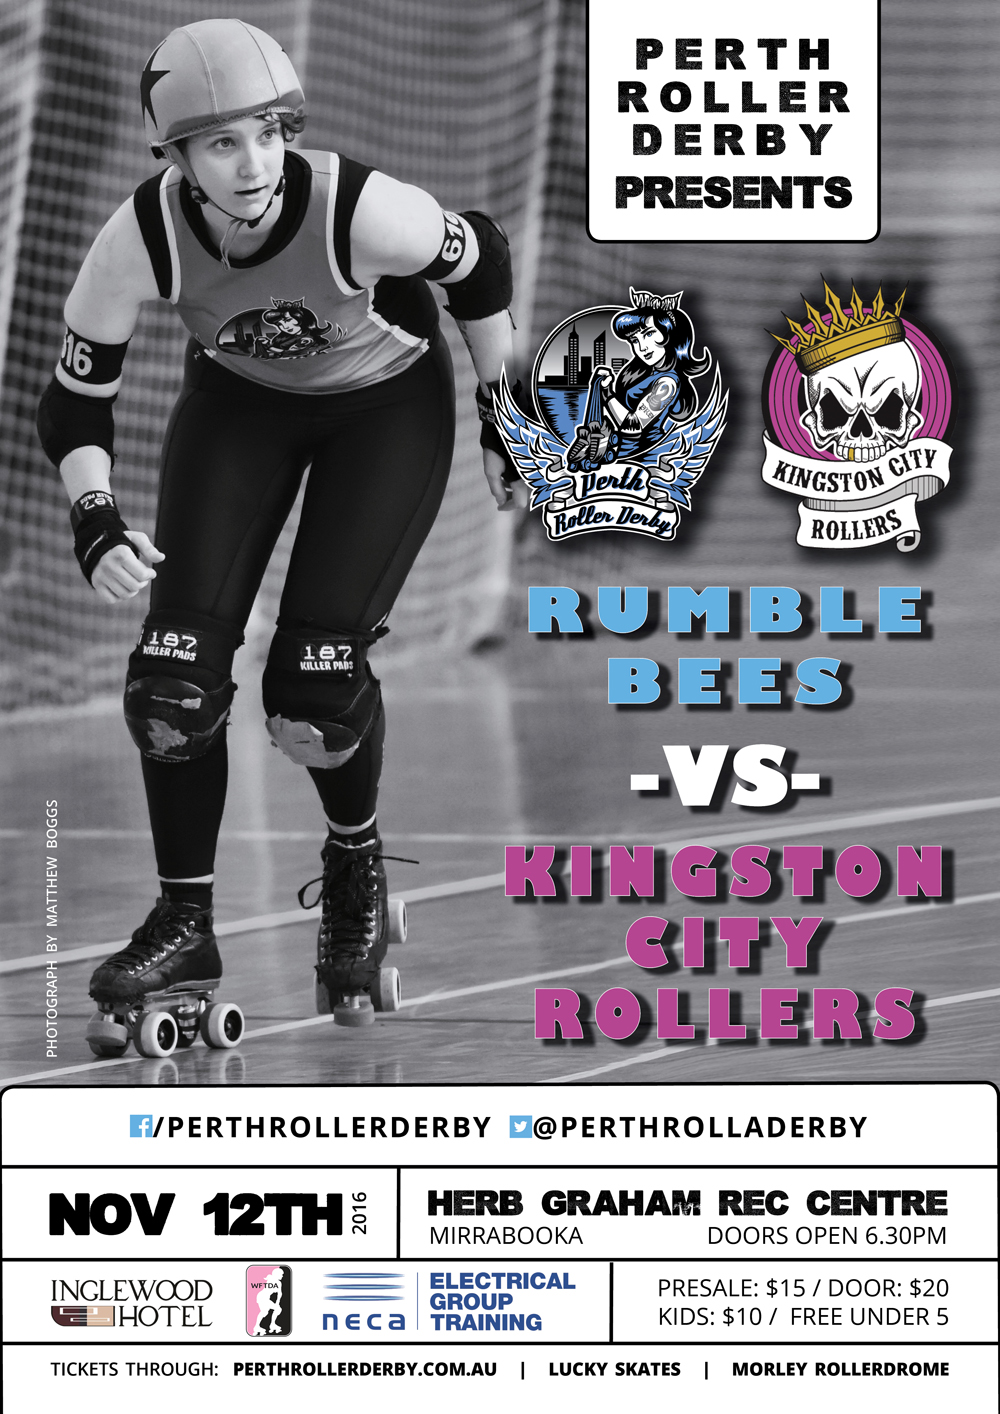 Rumble Bees vs Kingston City Rollers